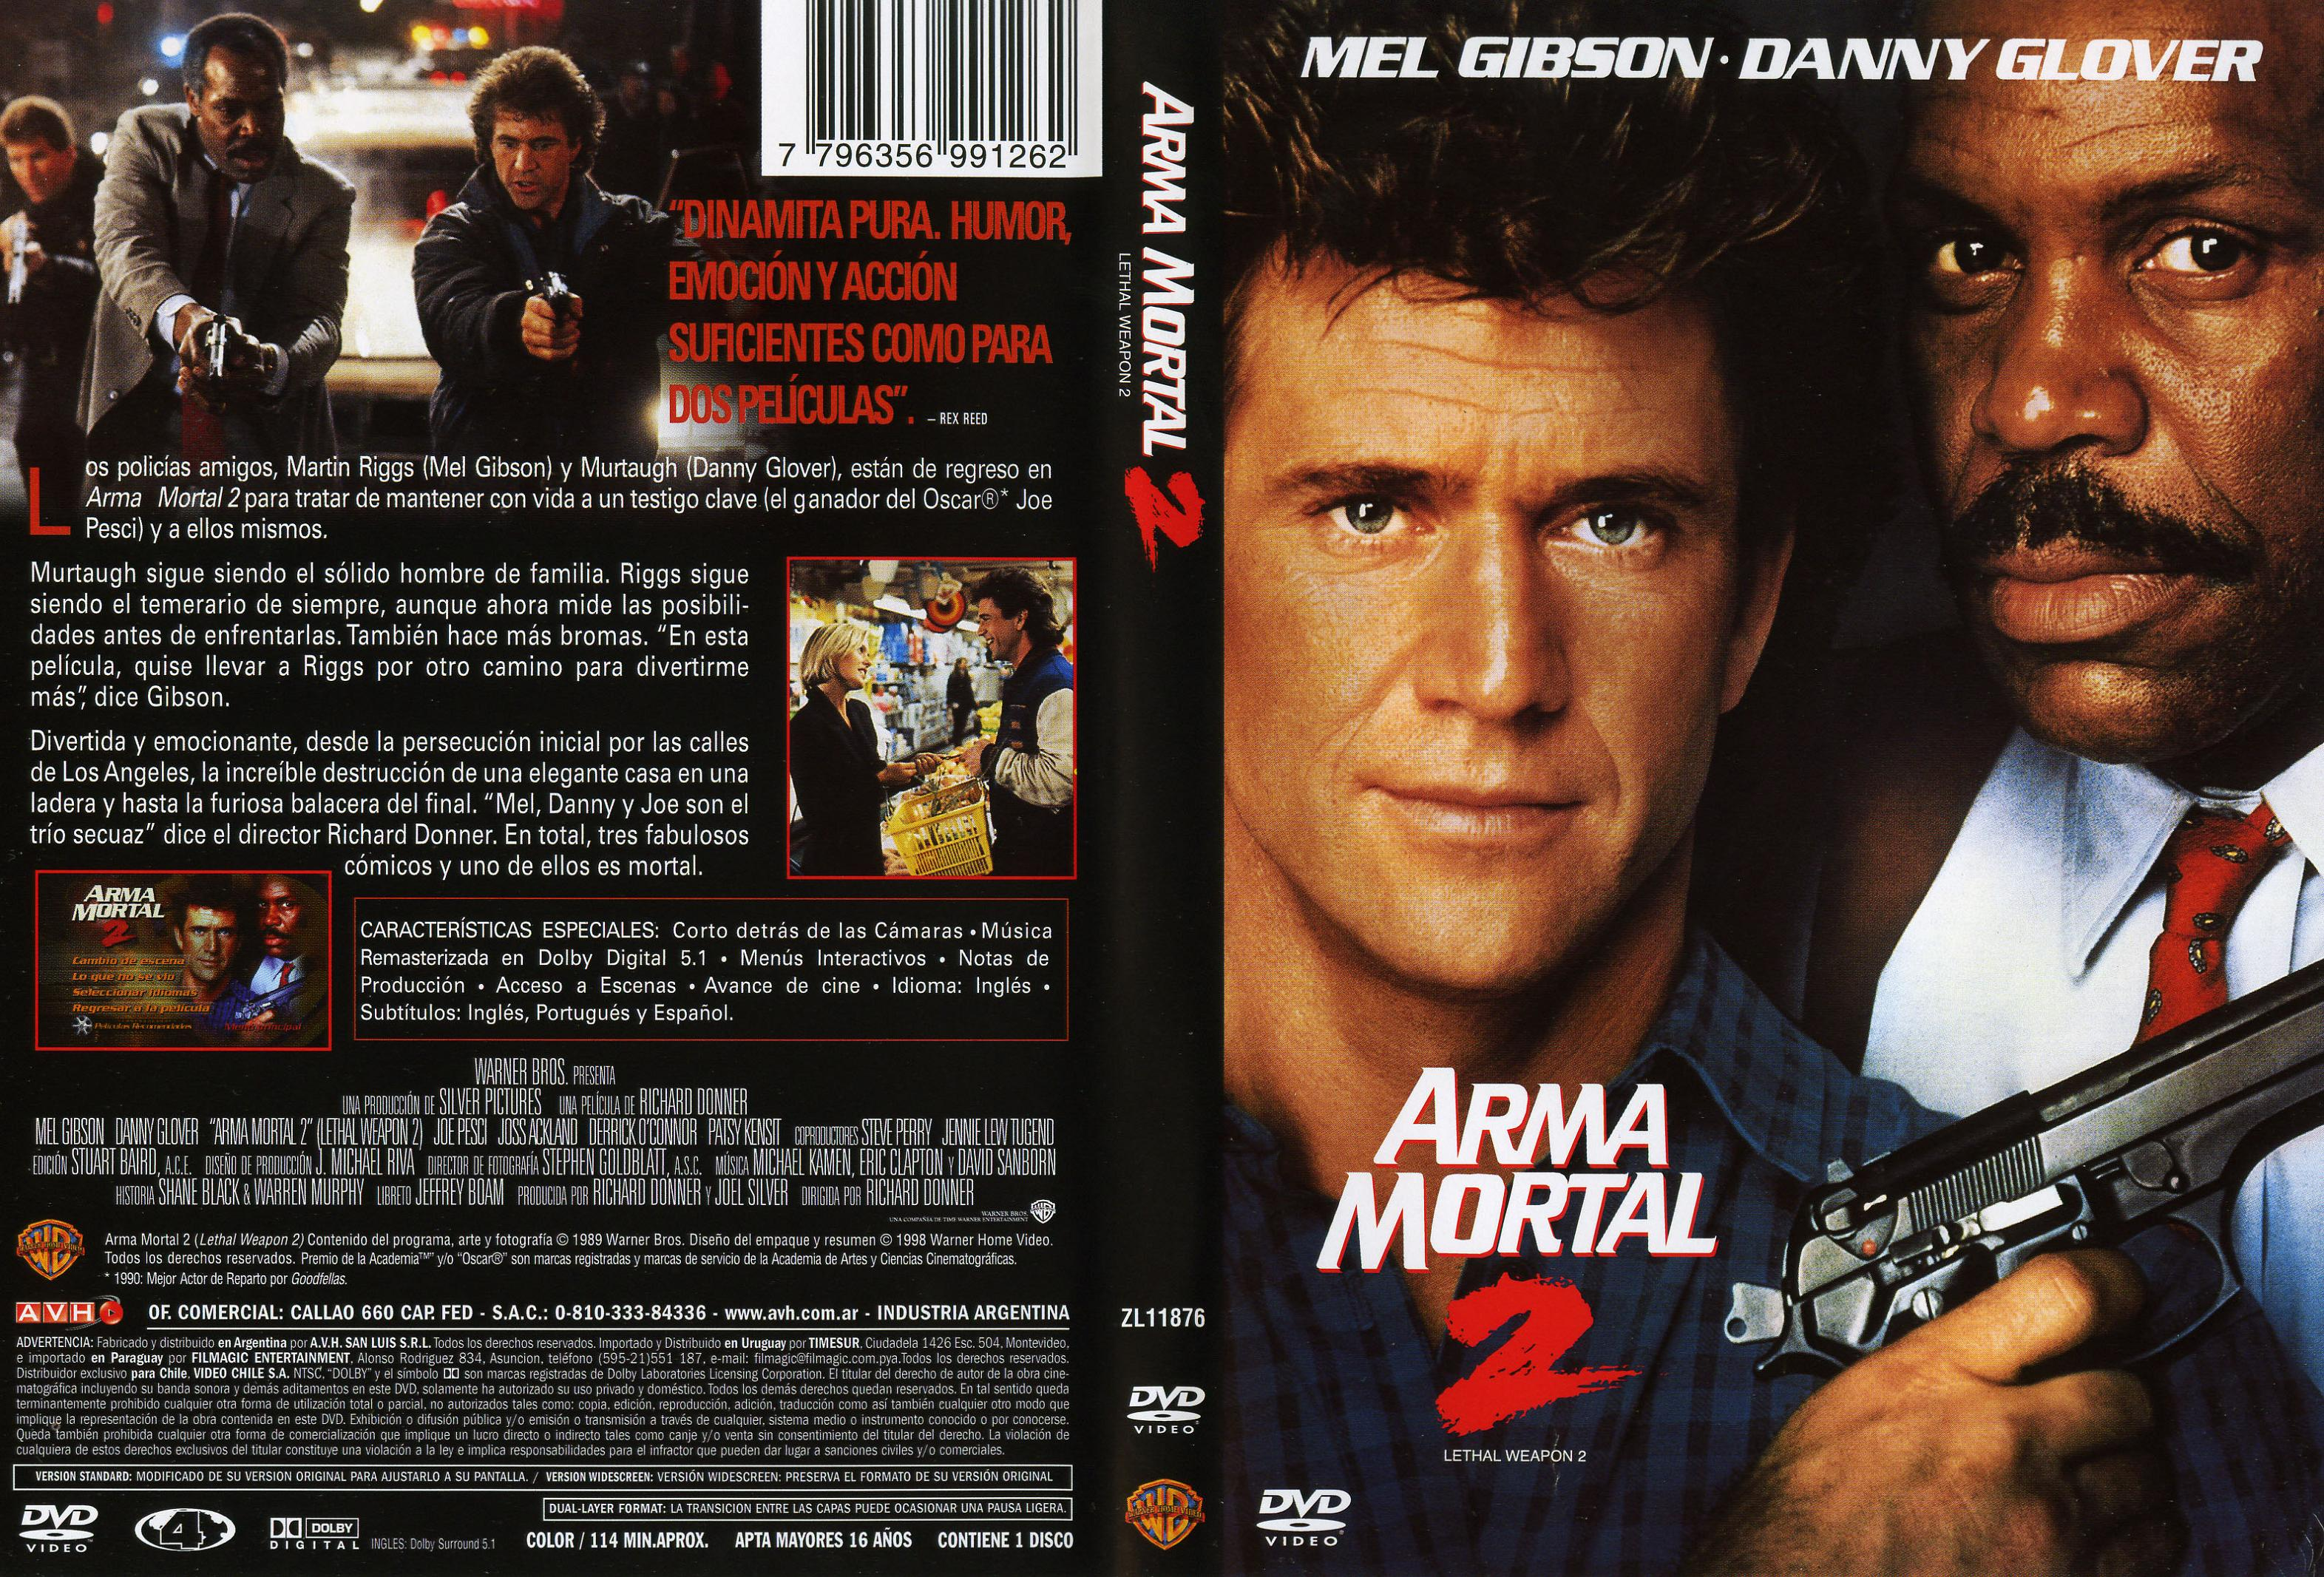 Arma mortal 2 -Lethal Weapon 1989 -Mg.,Mf.y Sf.-